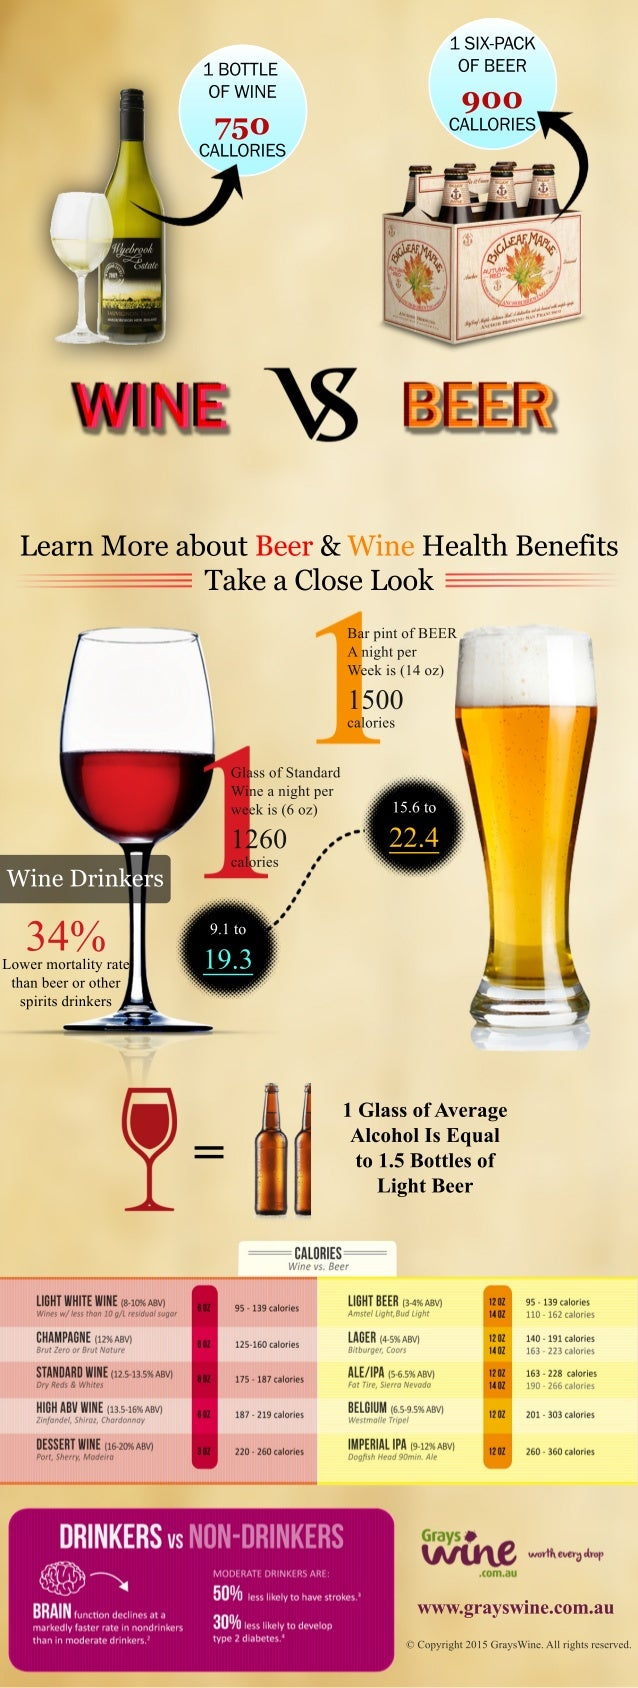 LearnMoreaboutBeer&WineHealthBenefits TakeaCloseLook 1BOTTLE OFWINE 750 CALLORIES 1SIX-PACK OFBEER 900 CALLORIES 34%Lowerm...